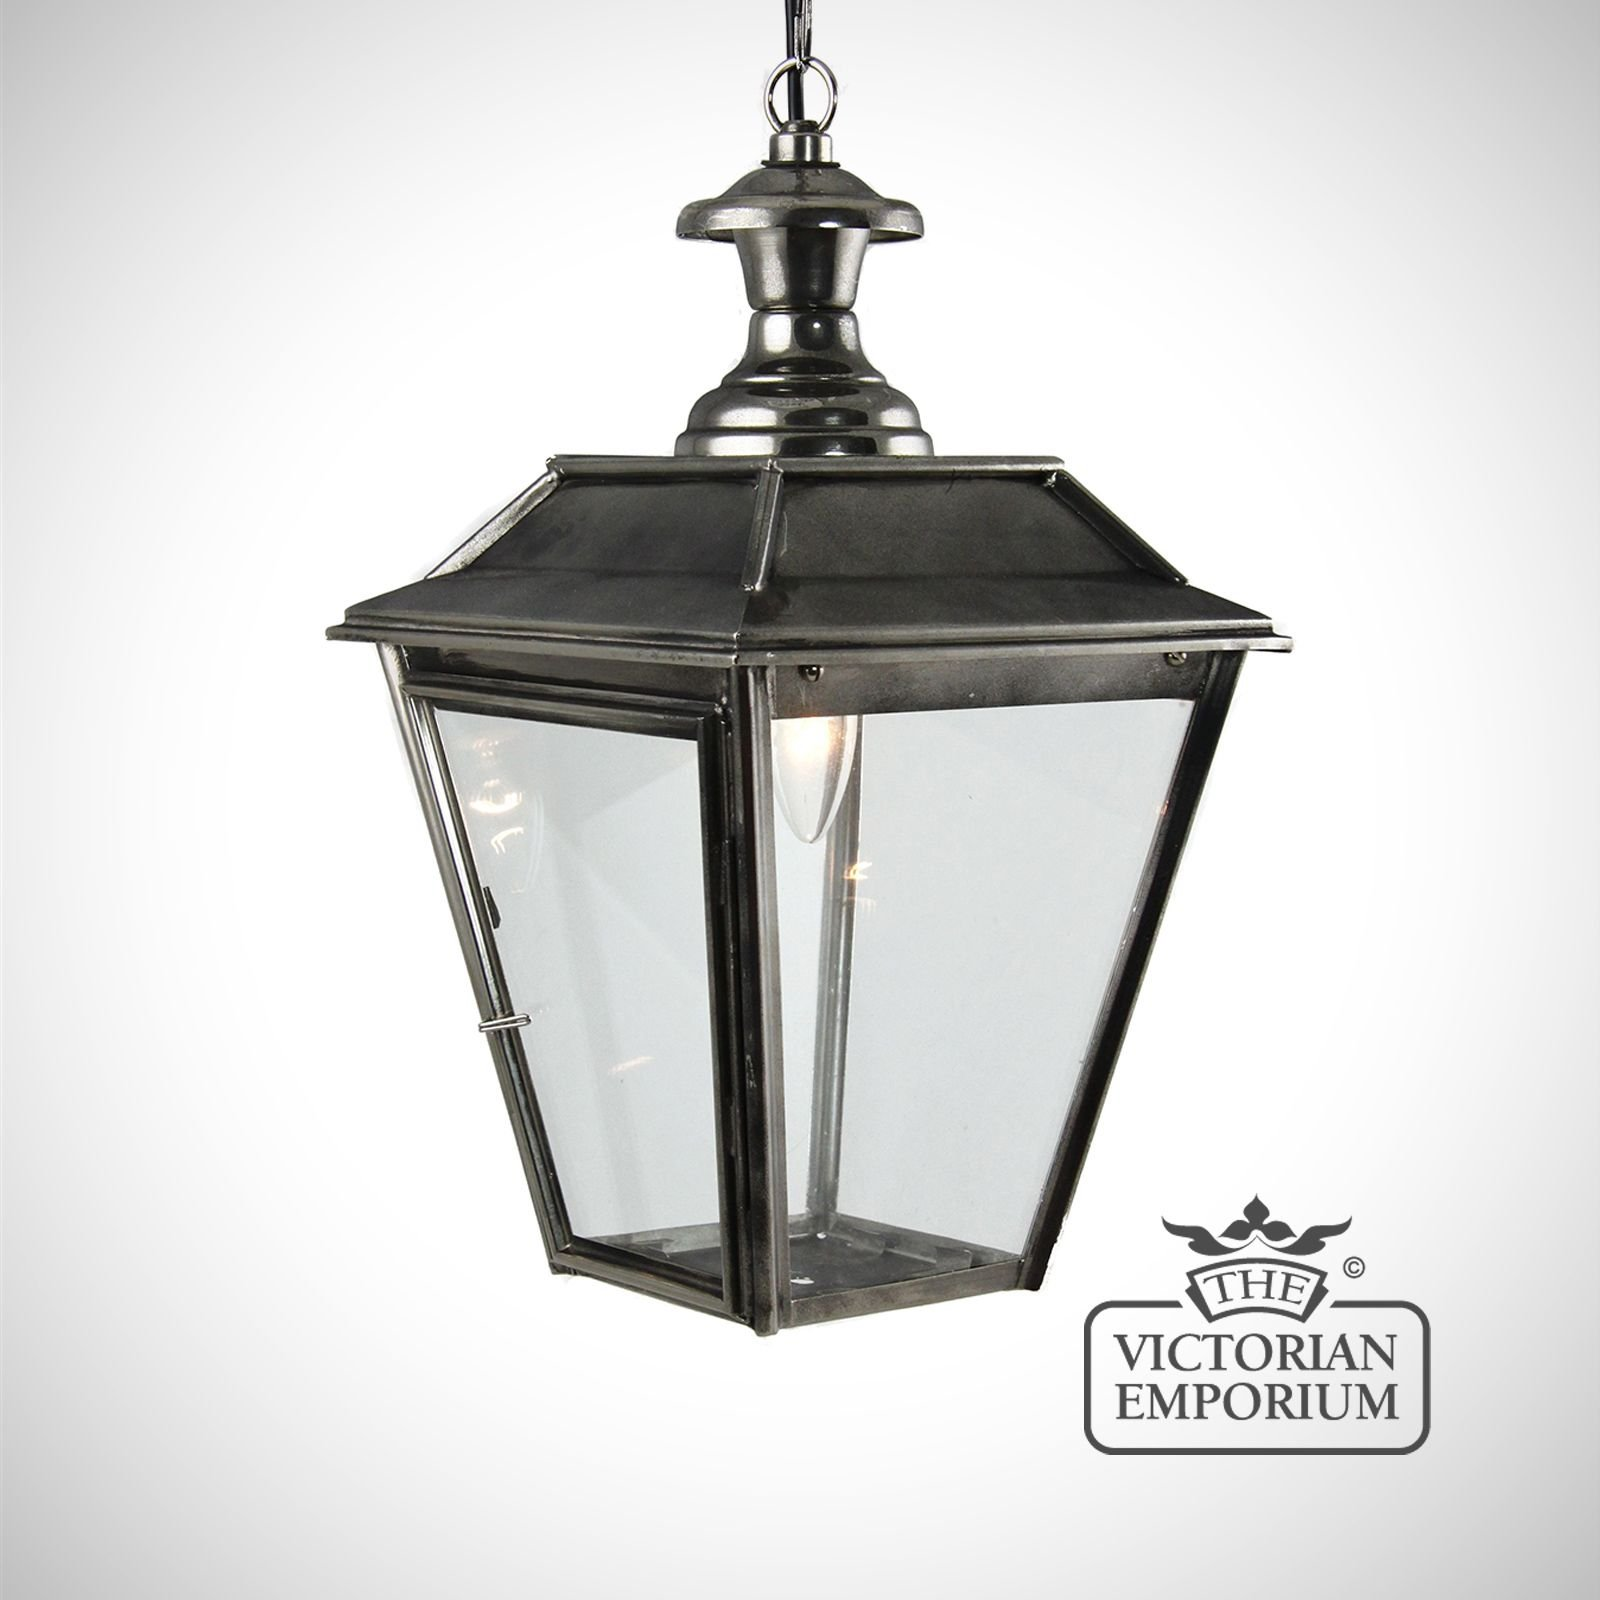 new product f8521 ff0b7 William small ceiling pendant in nickel black   Exterior ceiling lights